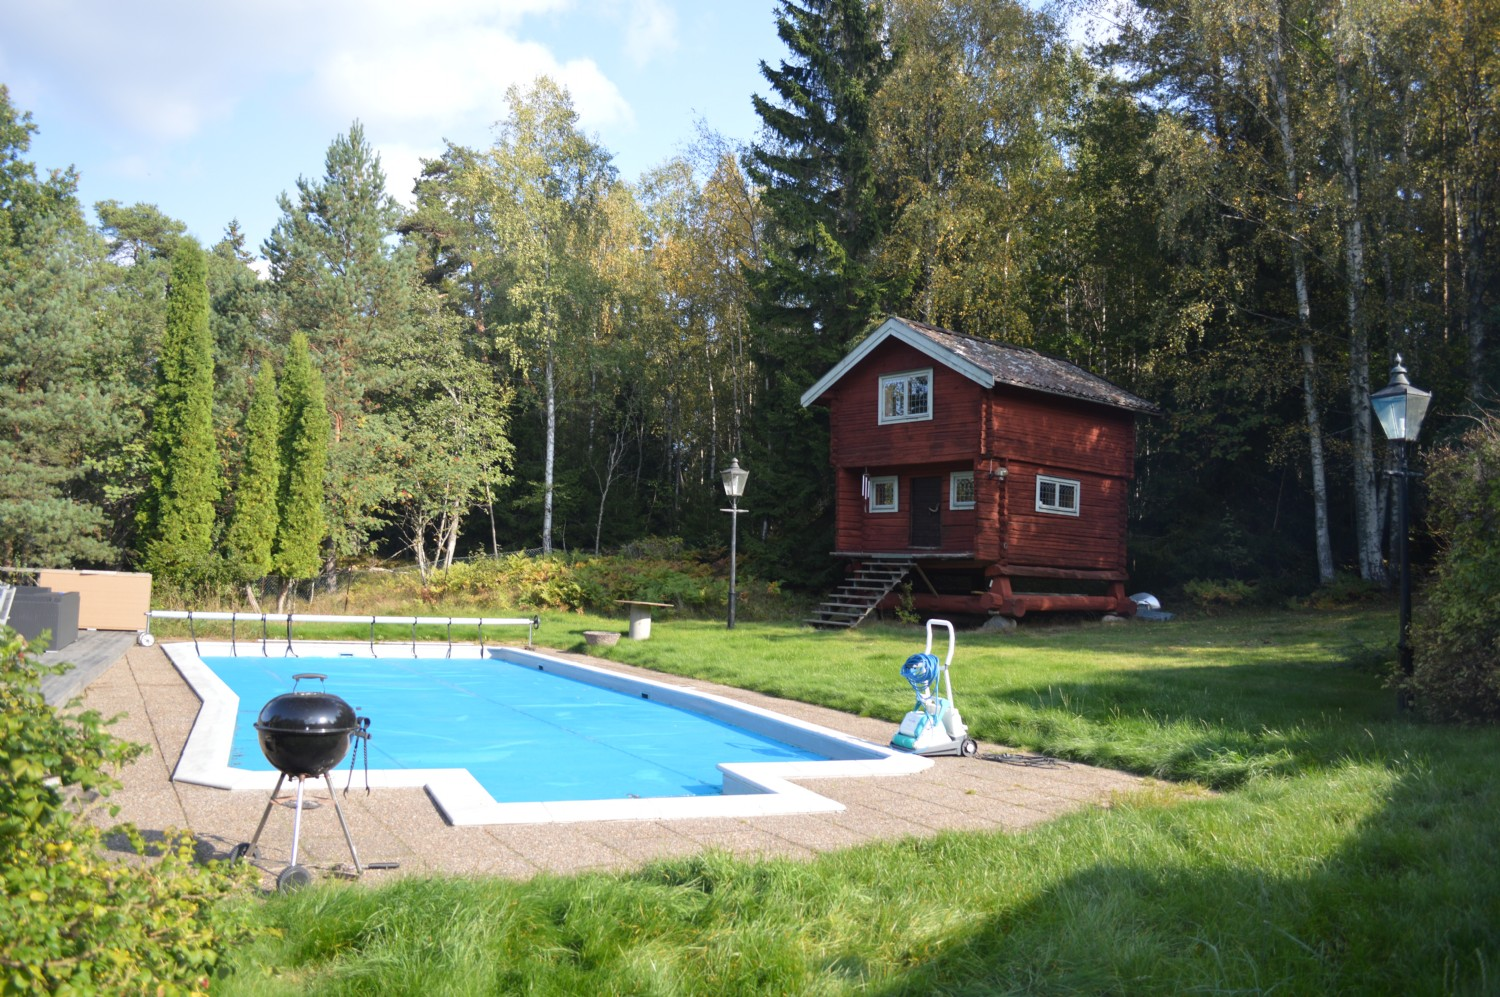 Poolen och härbret/ Swimming pool and old grain house